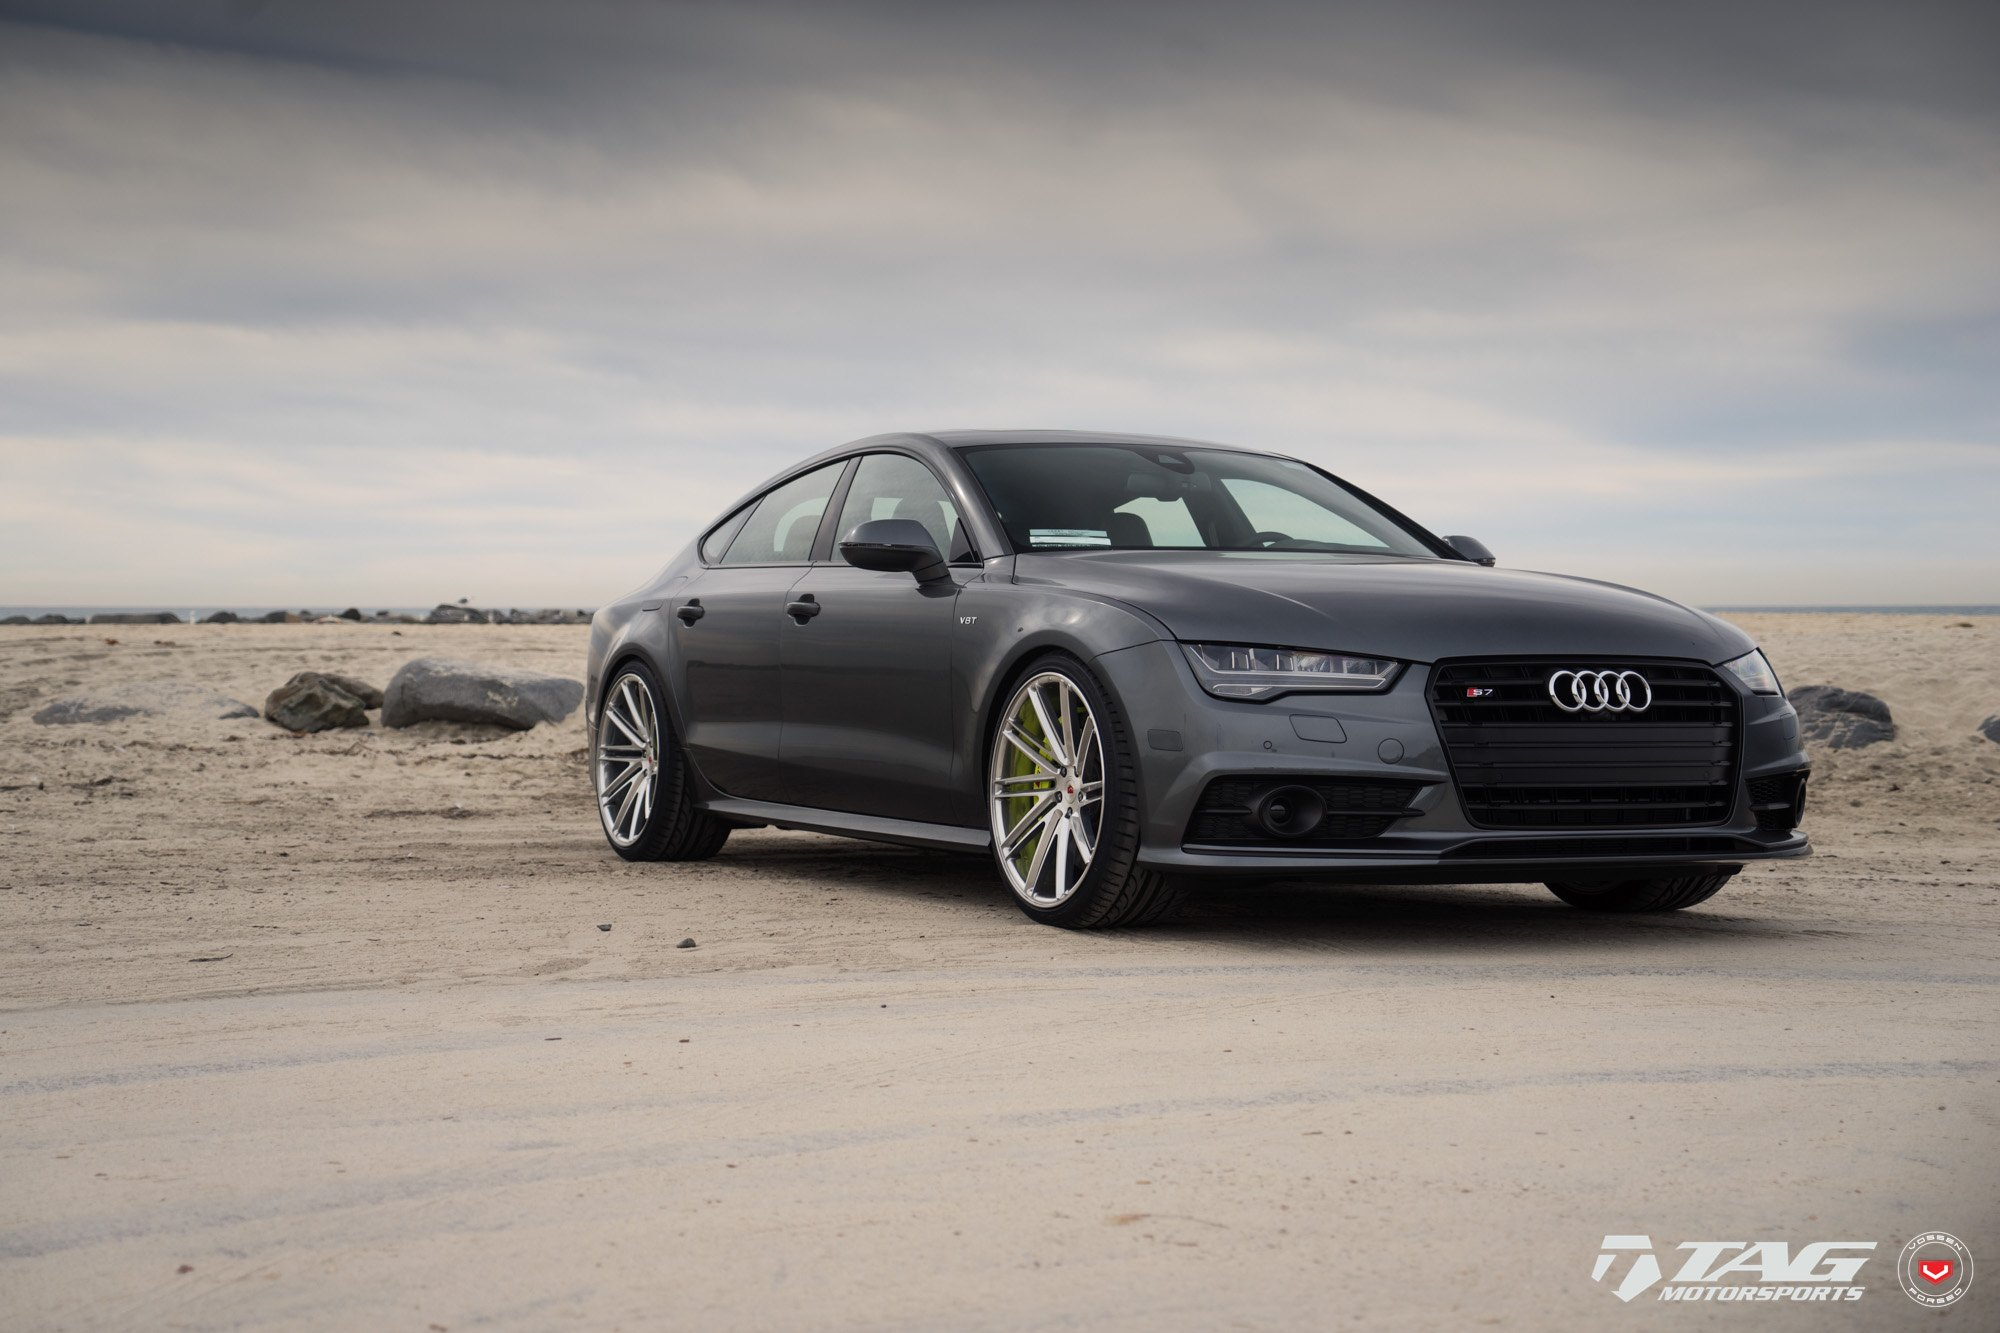 Aftermarket Goodies for Cly Black Audi S7 — CARiD.com Gallery on audi a7 black, cadillac brougham black, audi q5 black, audi b5 black, rolls-royce phantom coupe black, mercedes slk black, audi s6 black, audi a4 black, audi r4 black, audi b7 black, audi s6 coupe, subaru tribeca black, audi r8, mercedes-benz g63 black, audi s8 black, audi a5, audi s5 black, audi c5 black, audi rs7, audi q8 black,